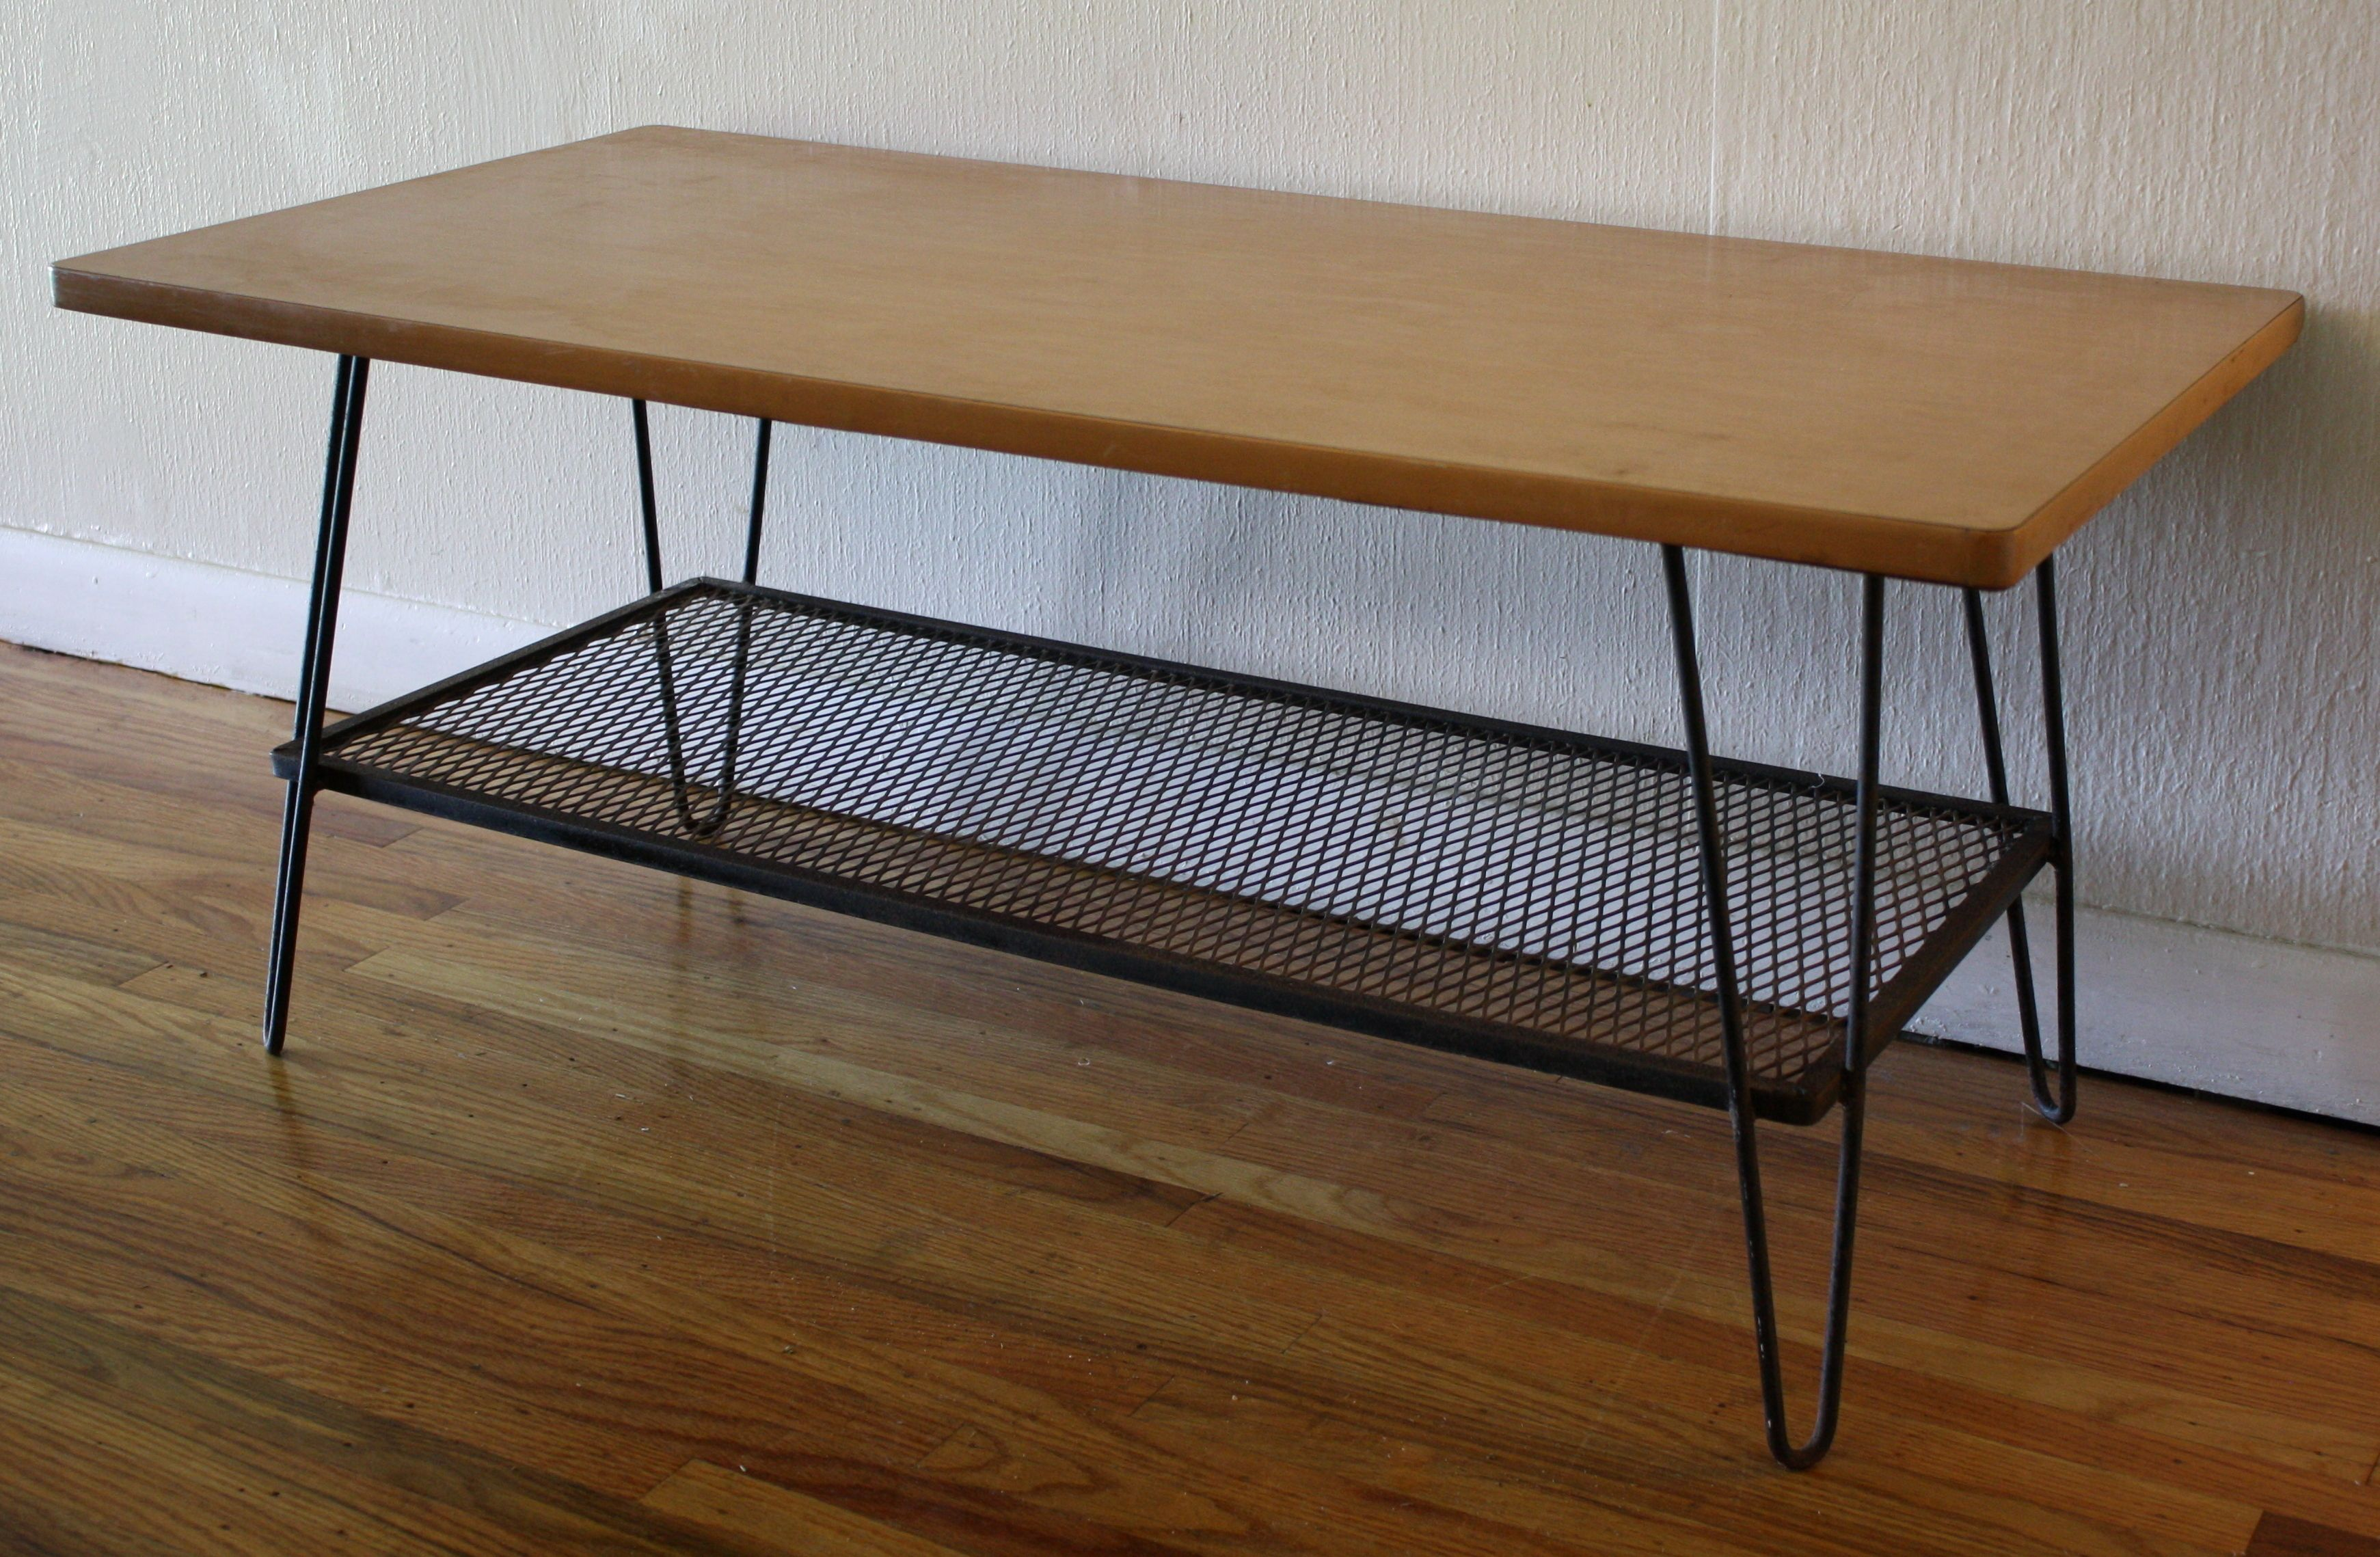 Foyer Table Hairpin Legs : Pickedvintage often has good mcm family rm coffee